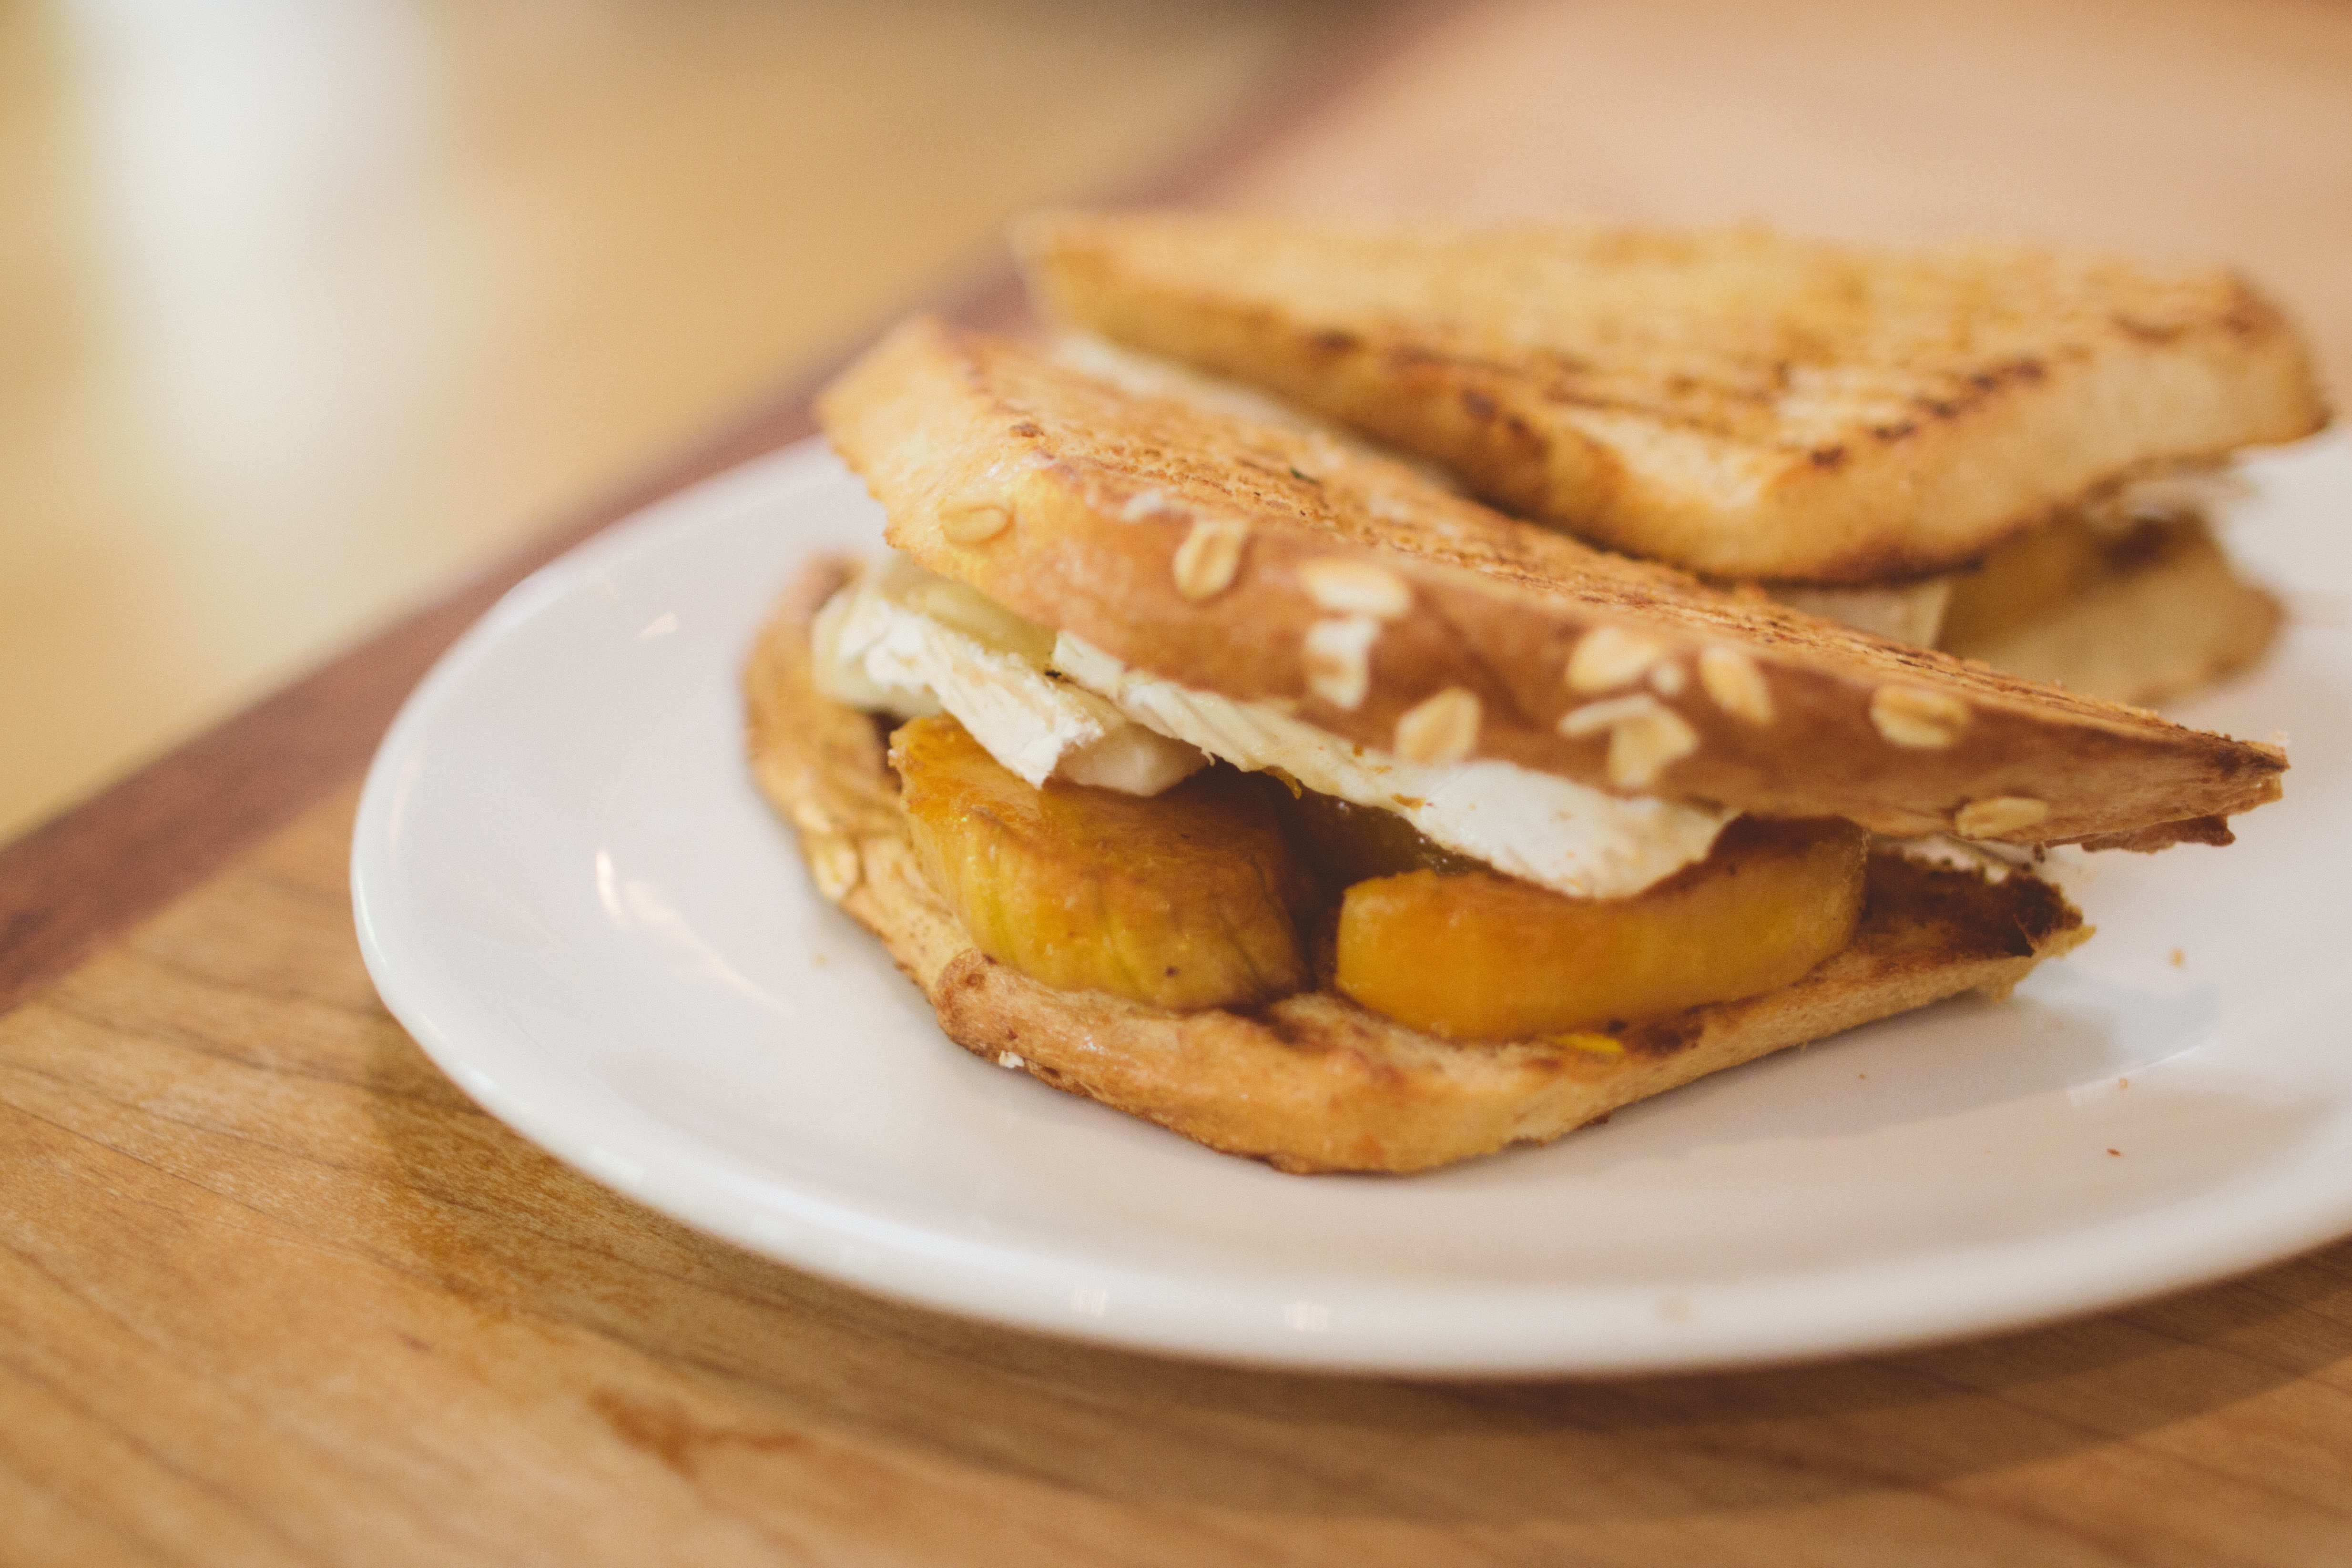 Cakes and Ale - Butternut Squash Sandwich